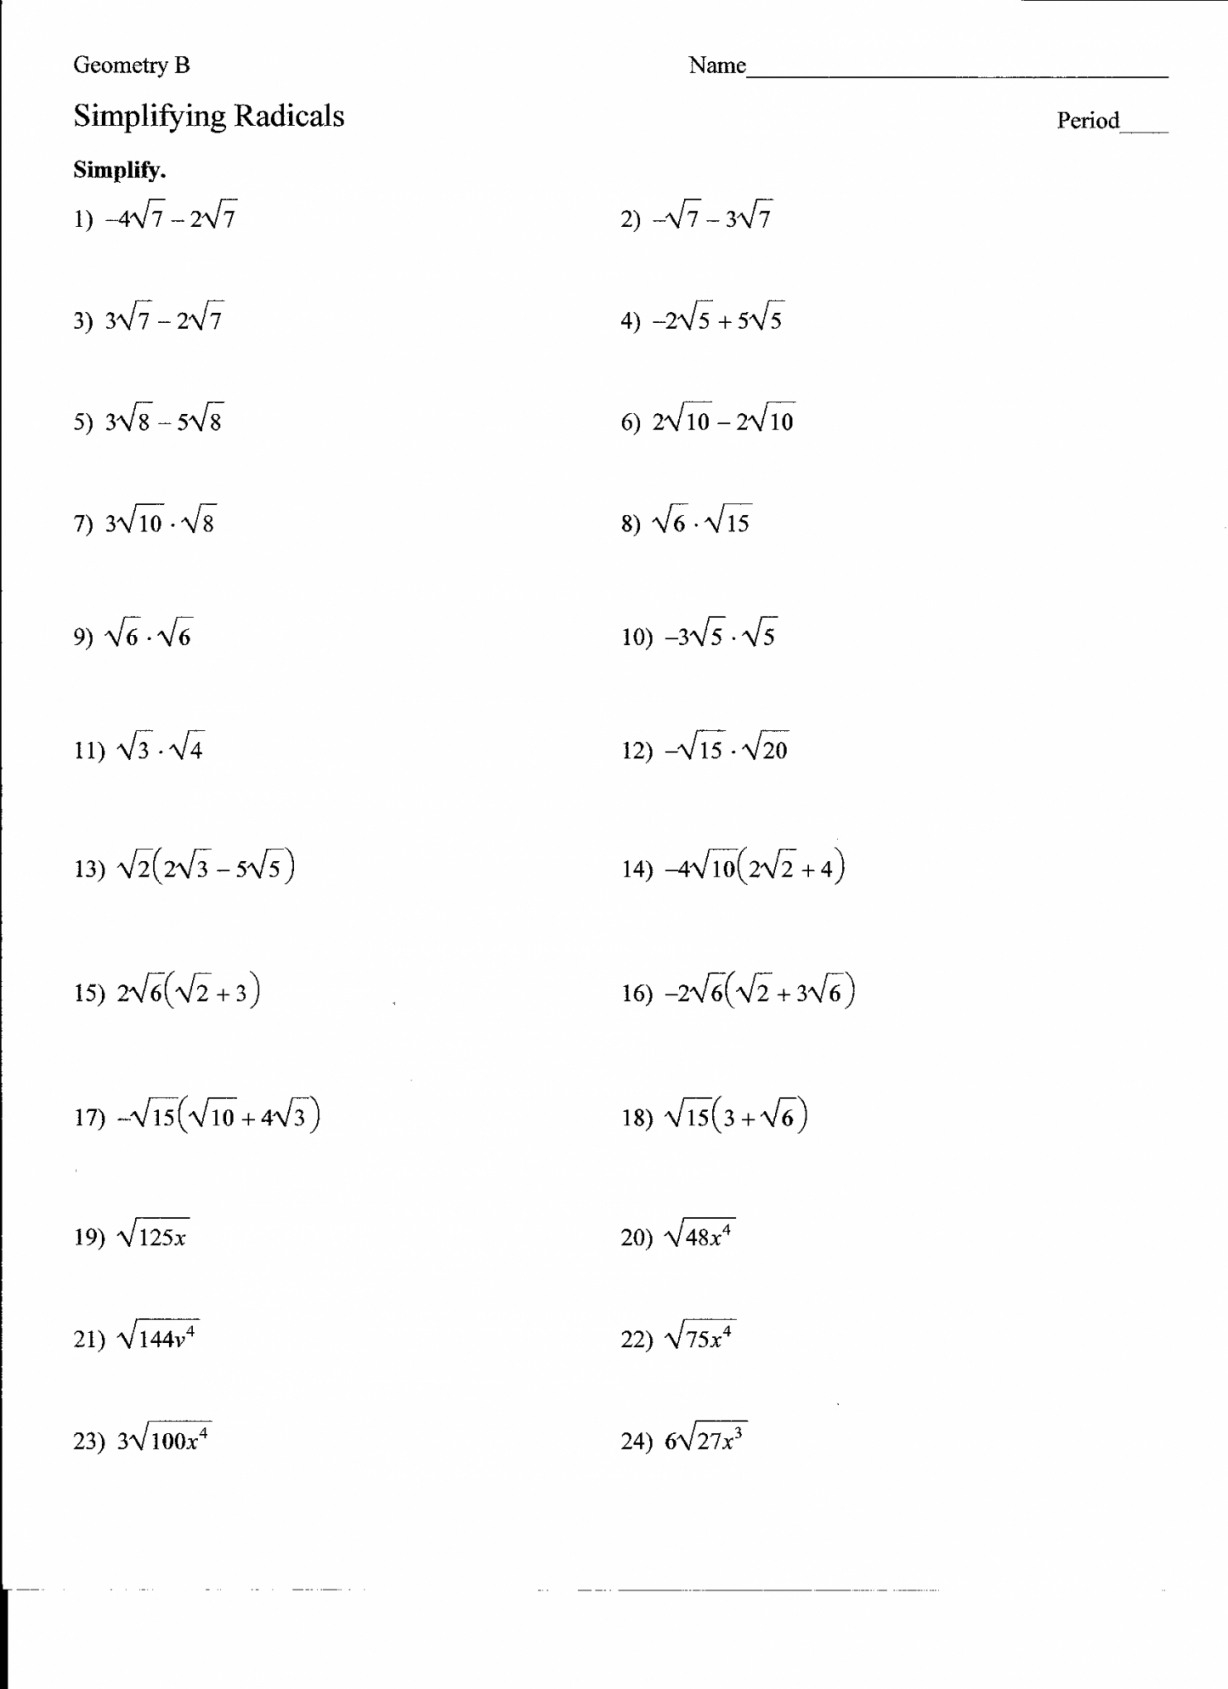 Simplifying Radicals Worksheet 1 New Simplifying Radicals